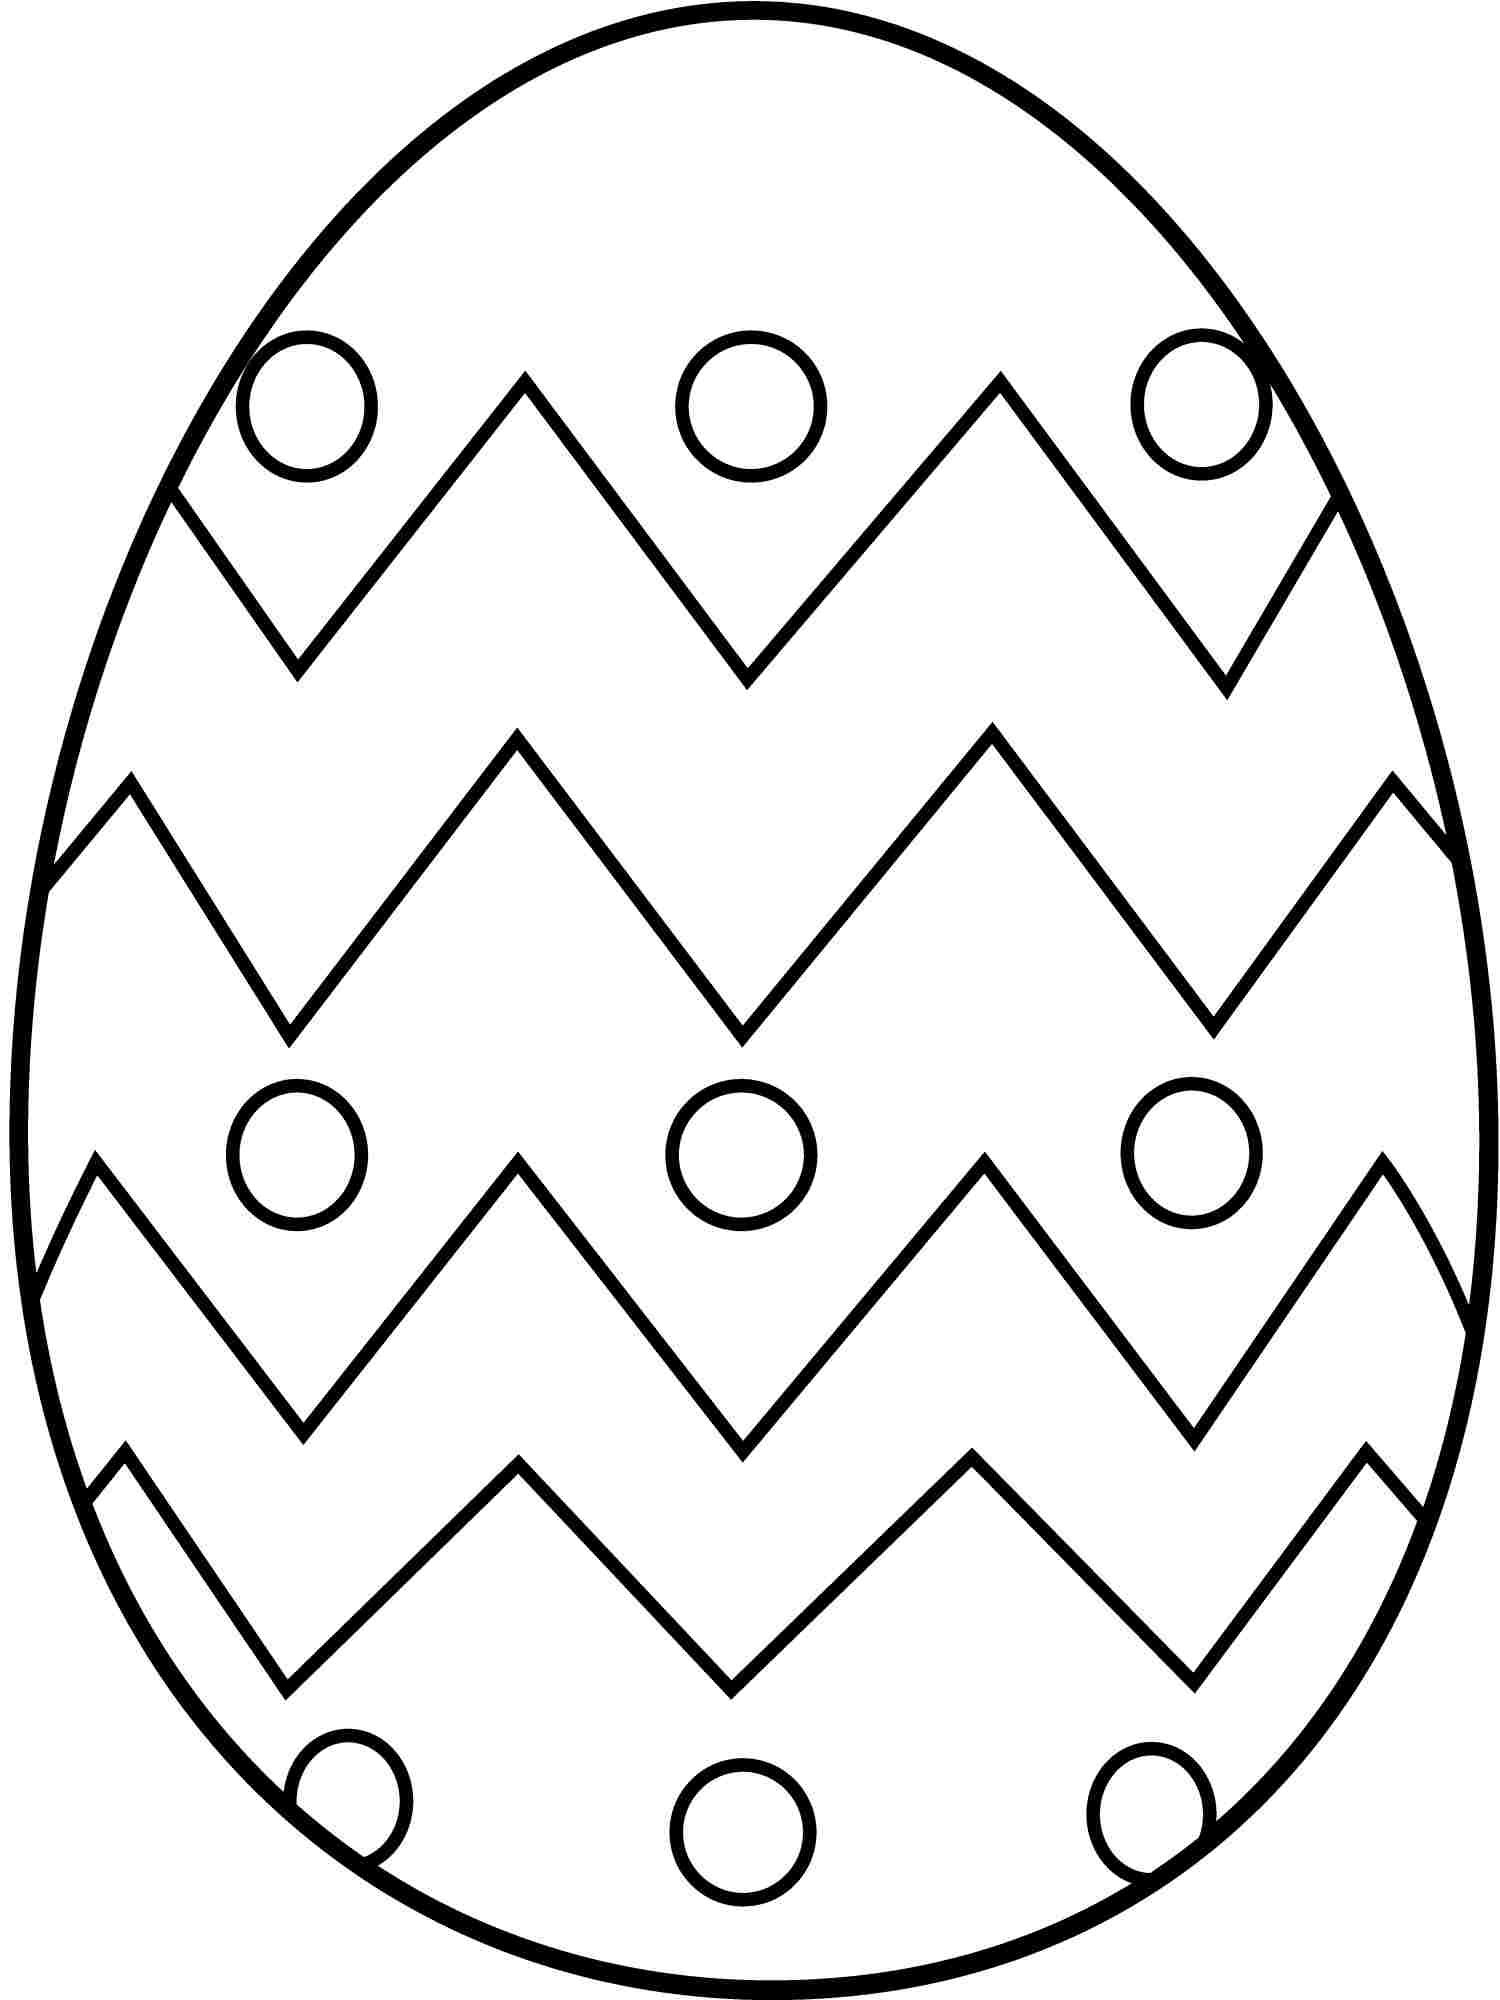 Pin By Christy Harris On Crafts   Easter Coloring Pages